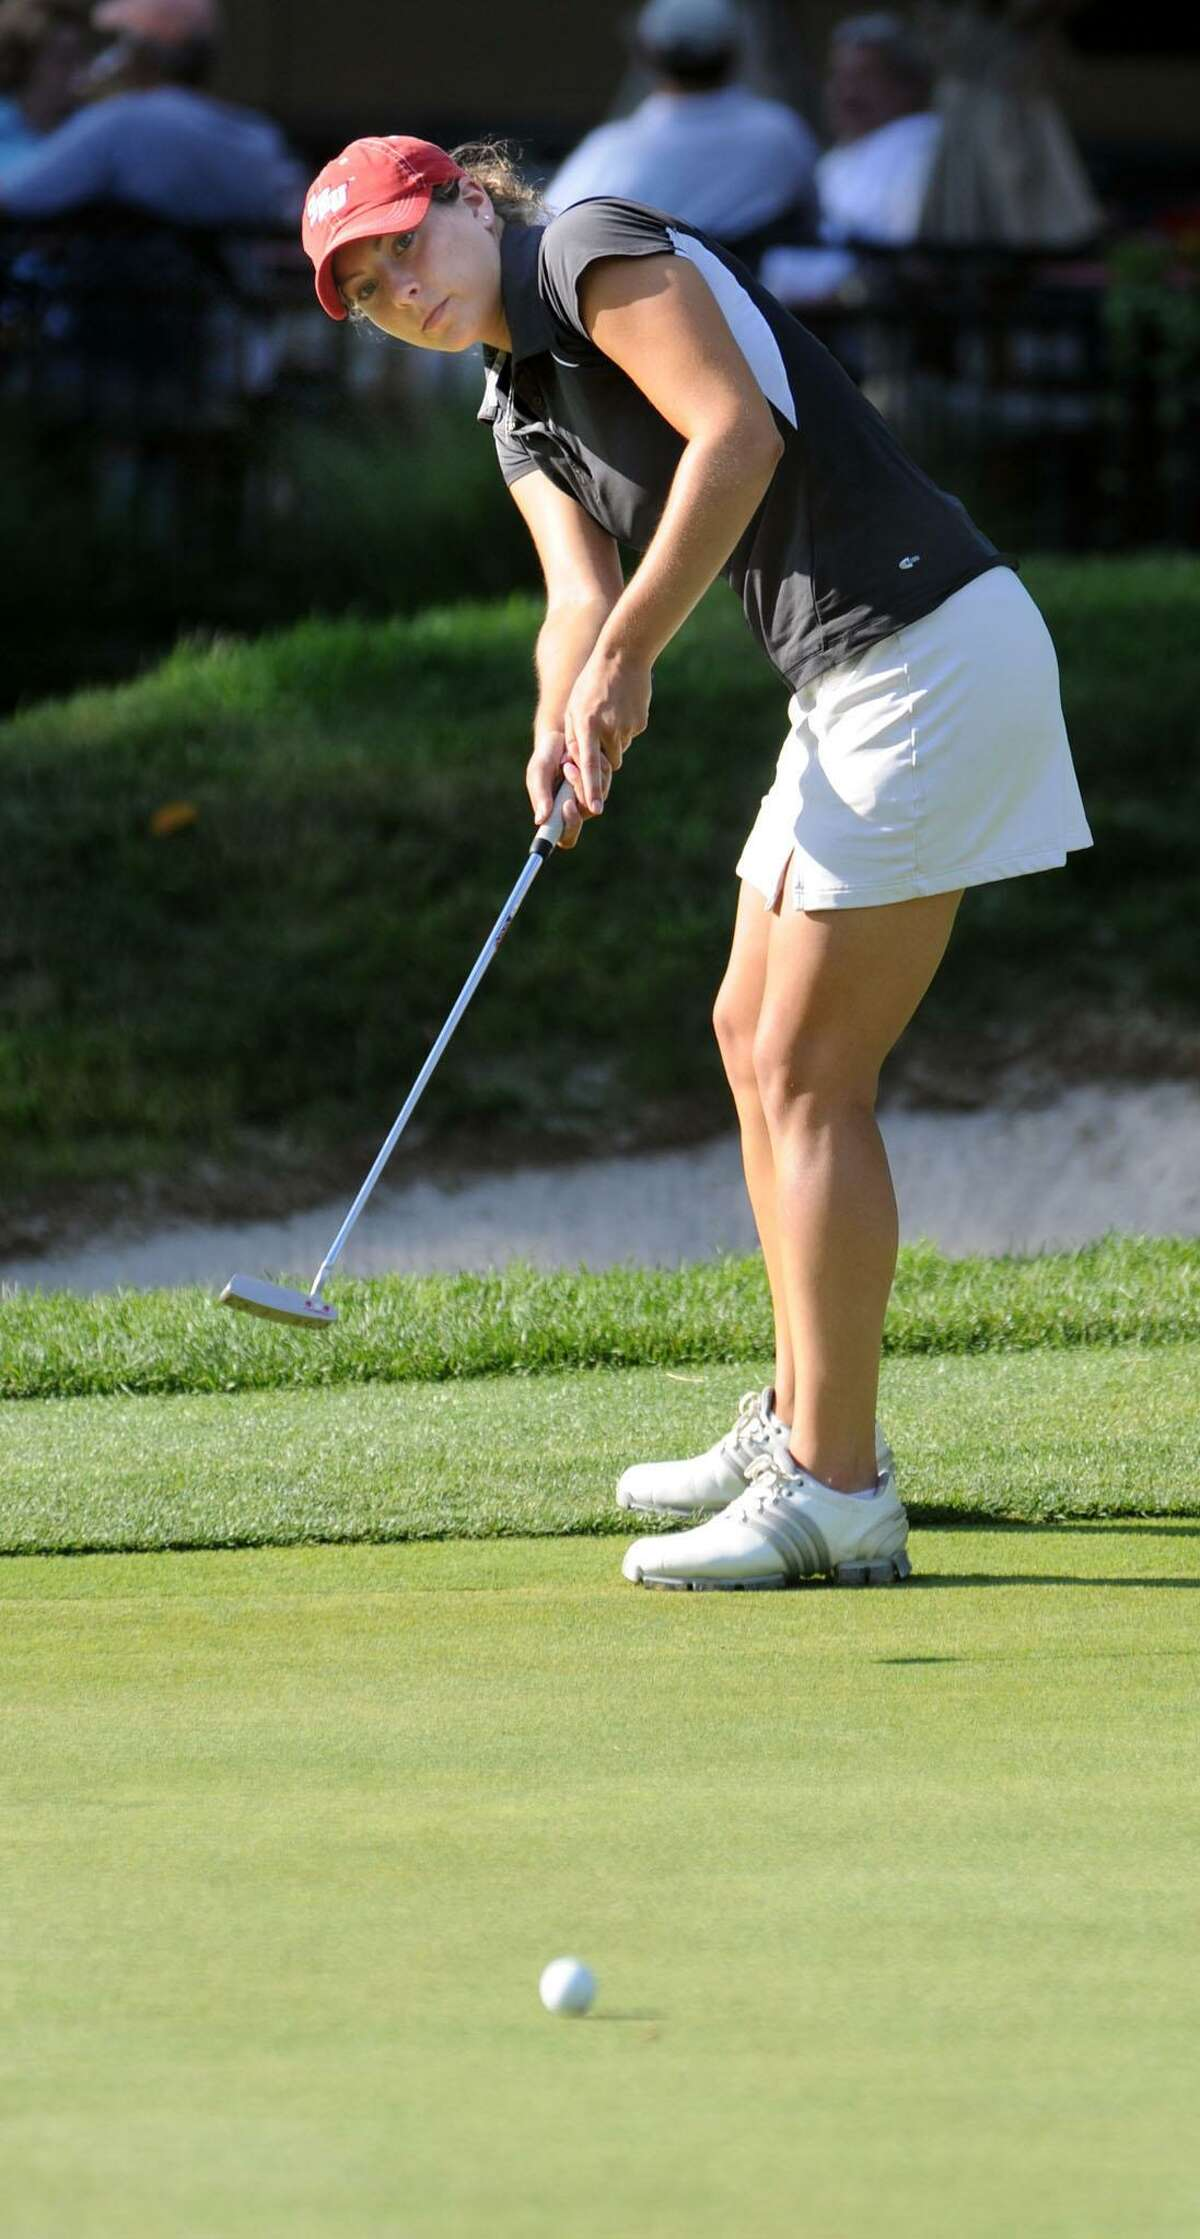 Jen Tierney putts on the 18th hole Sunday during the Danbury Amateur golf championship at Richter Park, July 18, 2010.